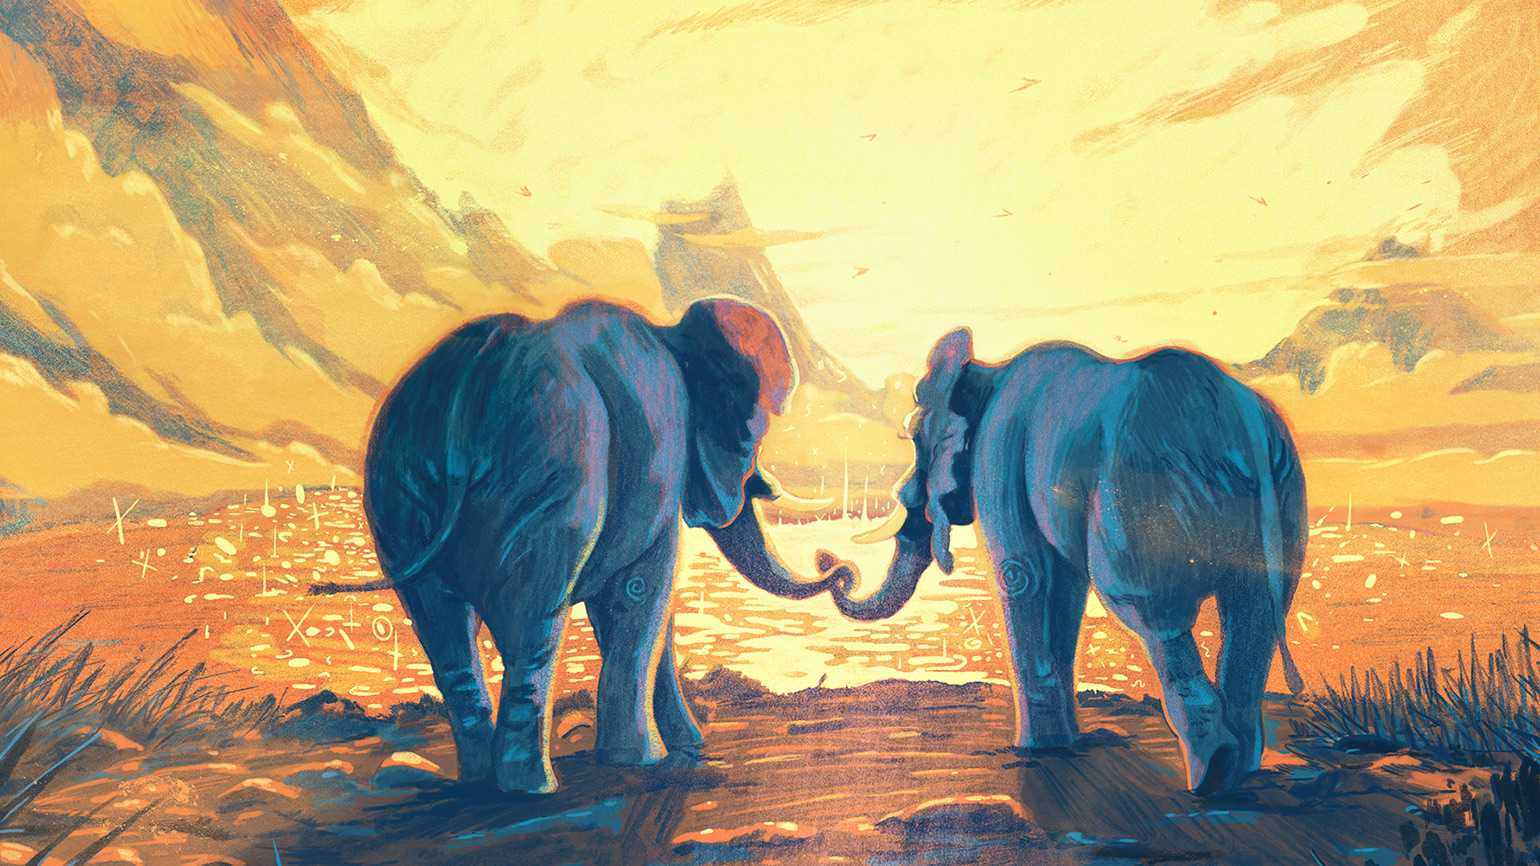 An artist's rendering of a pair of grieving elephants